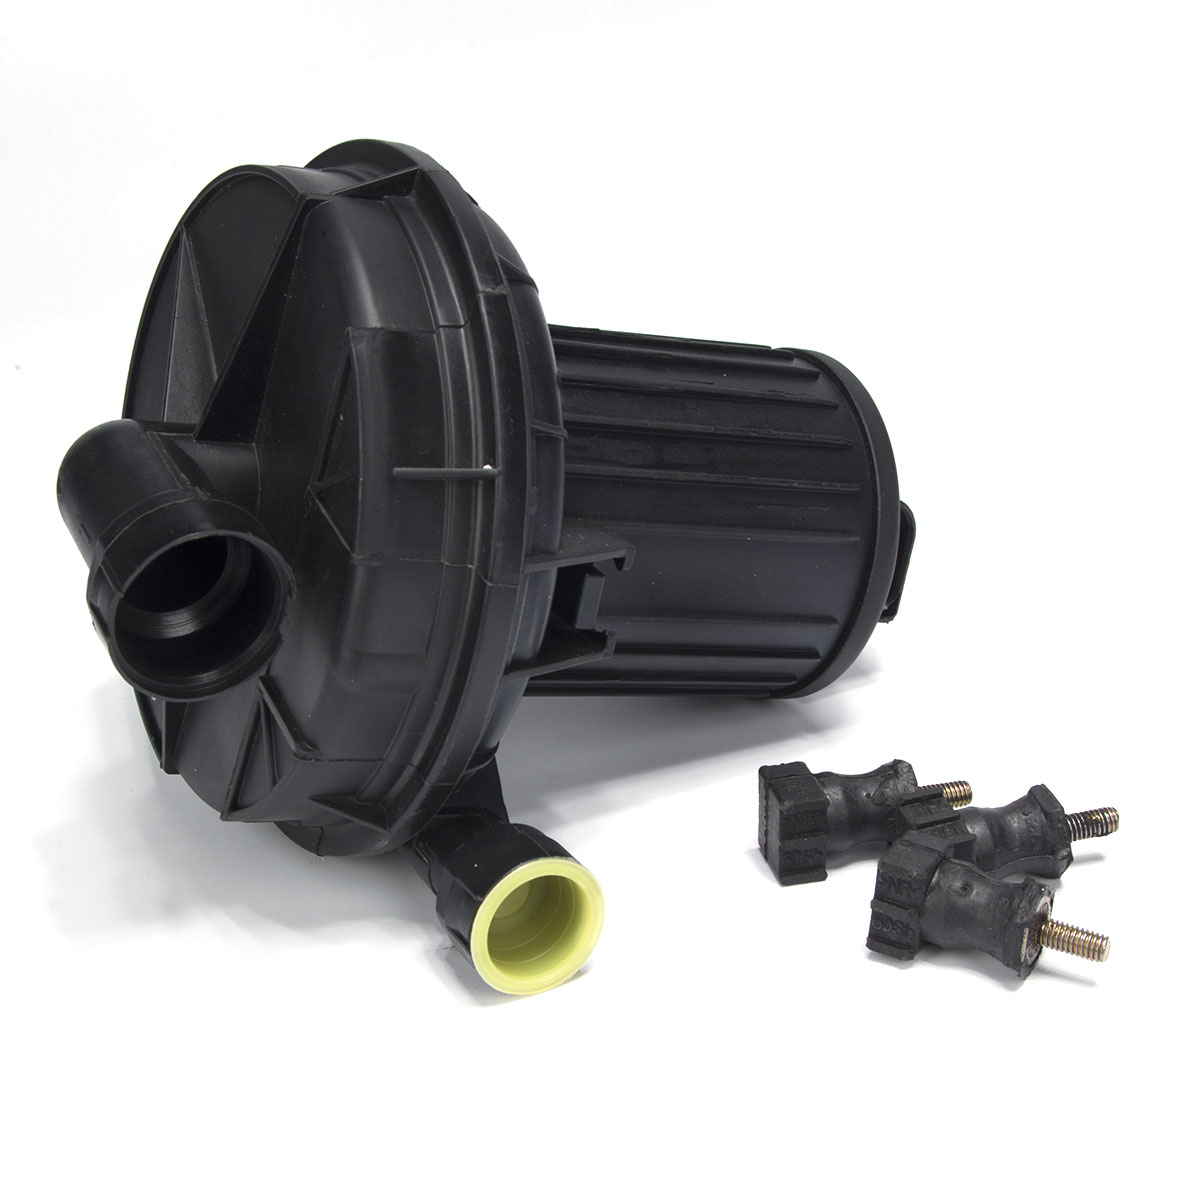 Smog Auxiliary Secondary Air Pump For VW Beetle Golf Jetta Passat 1.8T 2.0 2.8Smog Auxiliary Secondary Air Pump For VW Beetle Golf Jetta Passat 1.8T 2.0 2.8